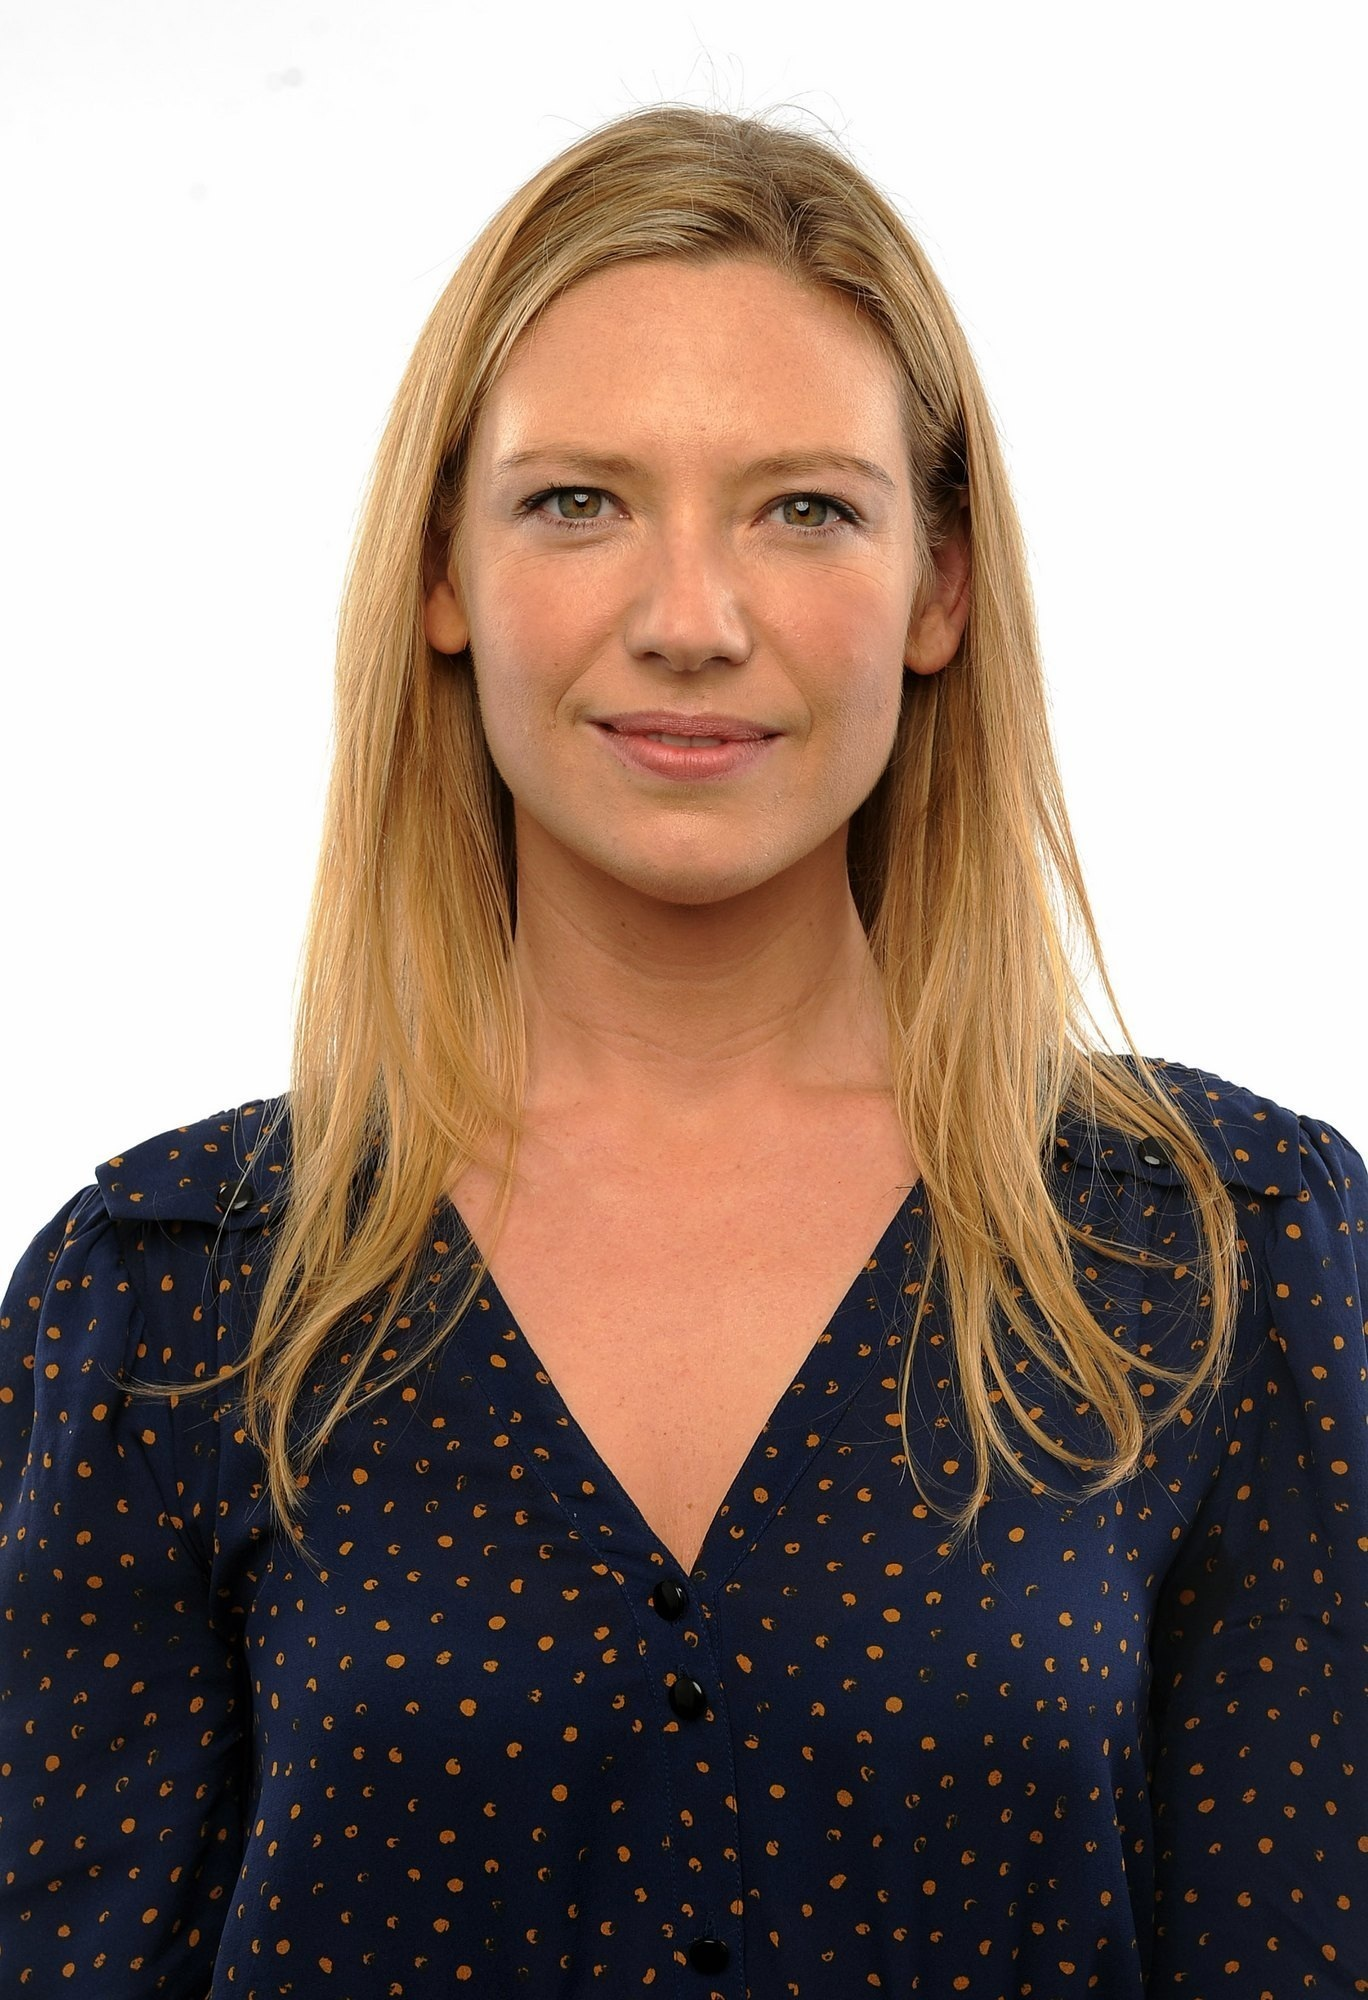 Hd Wallpaper Pack Anna Torv Wallpapers High Quality Download Free